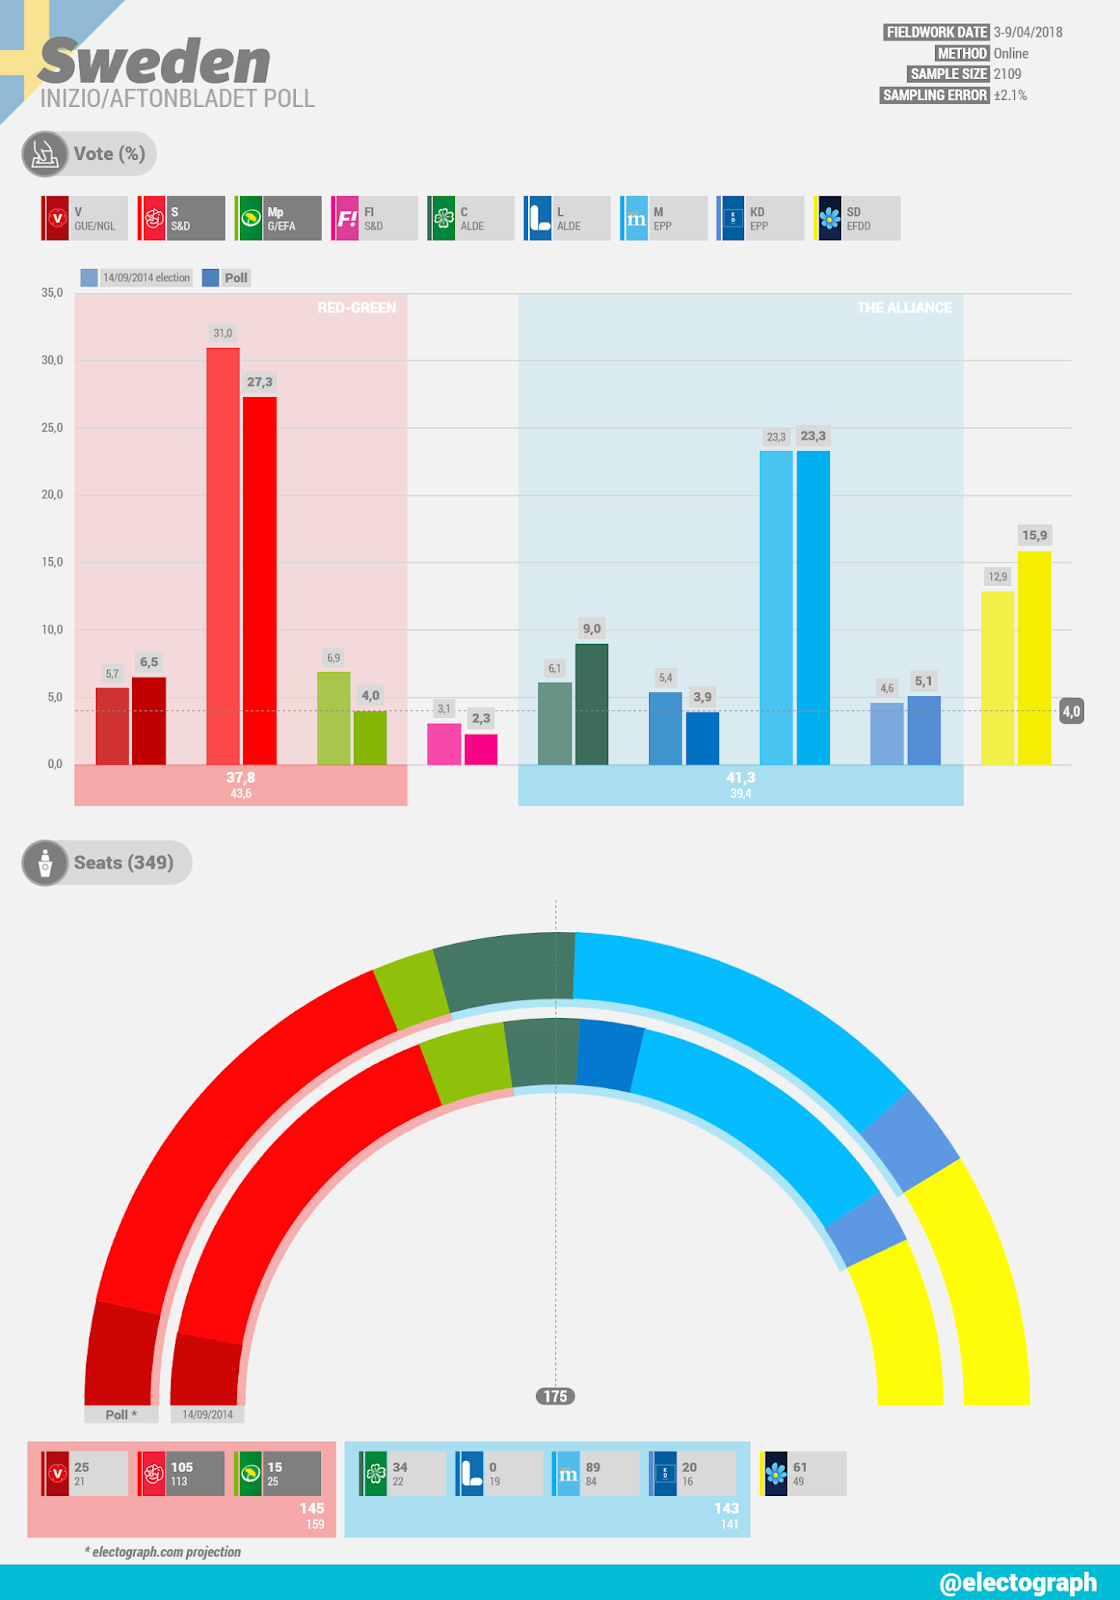 SWEDEN Inizio poll chart for Aftonbladet, April 2018